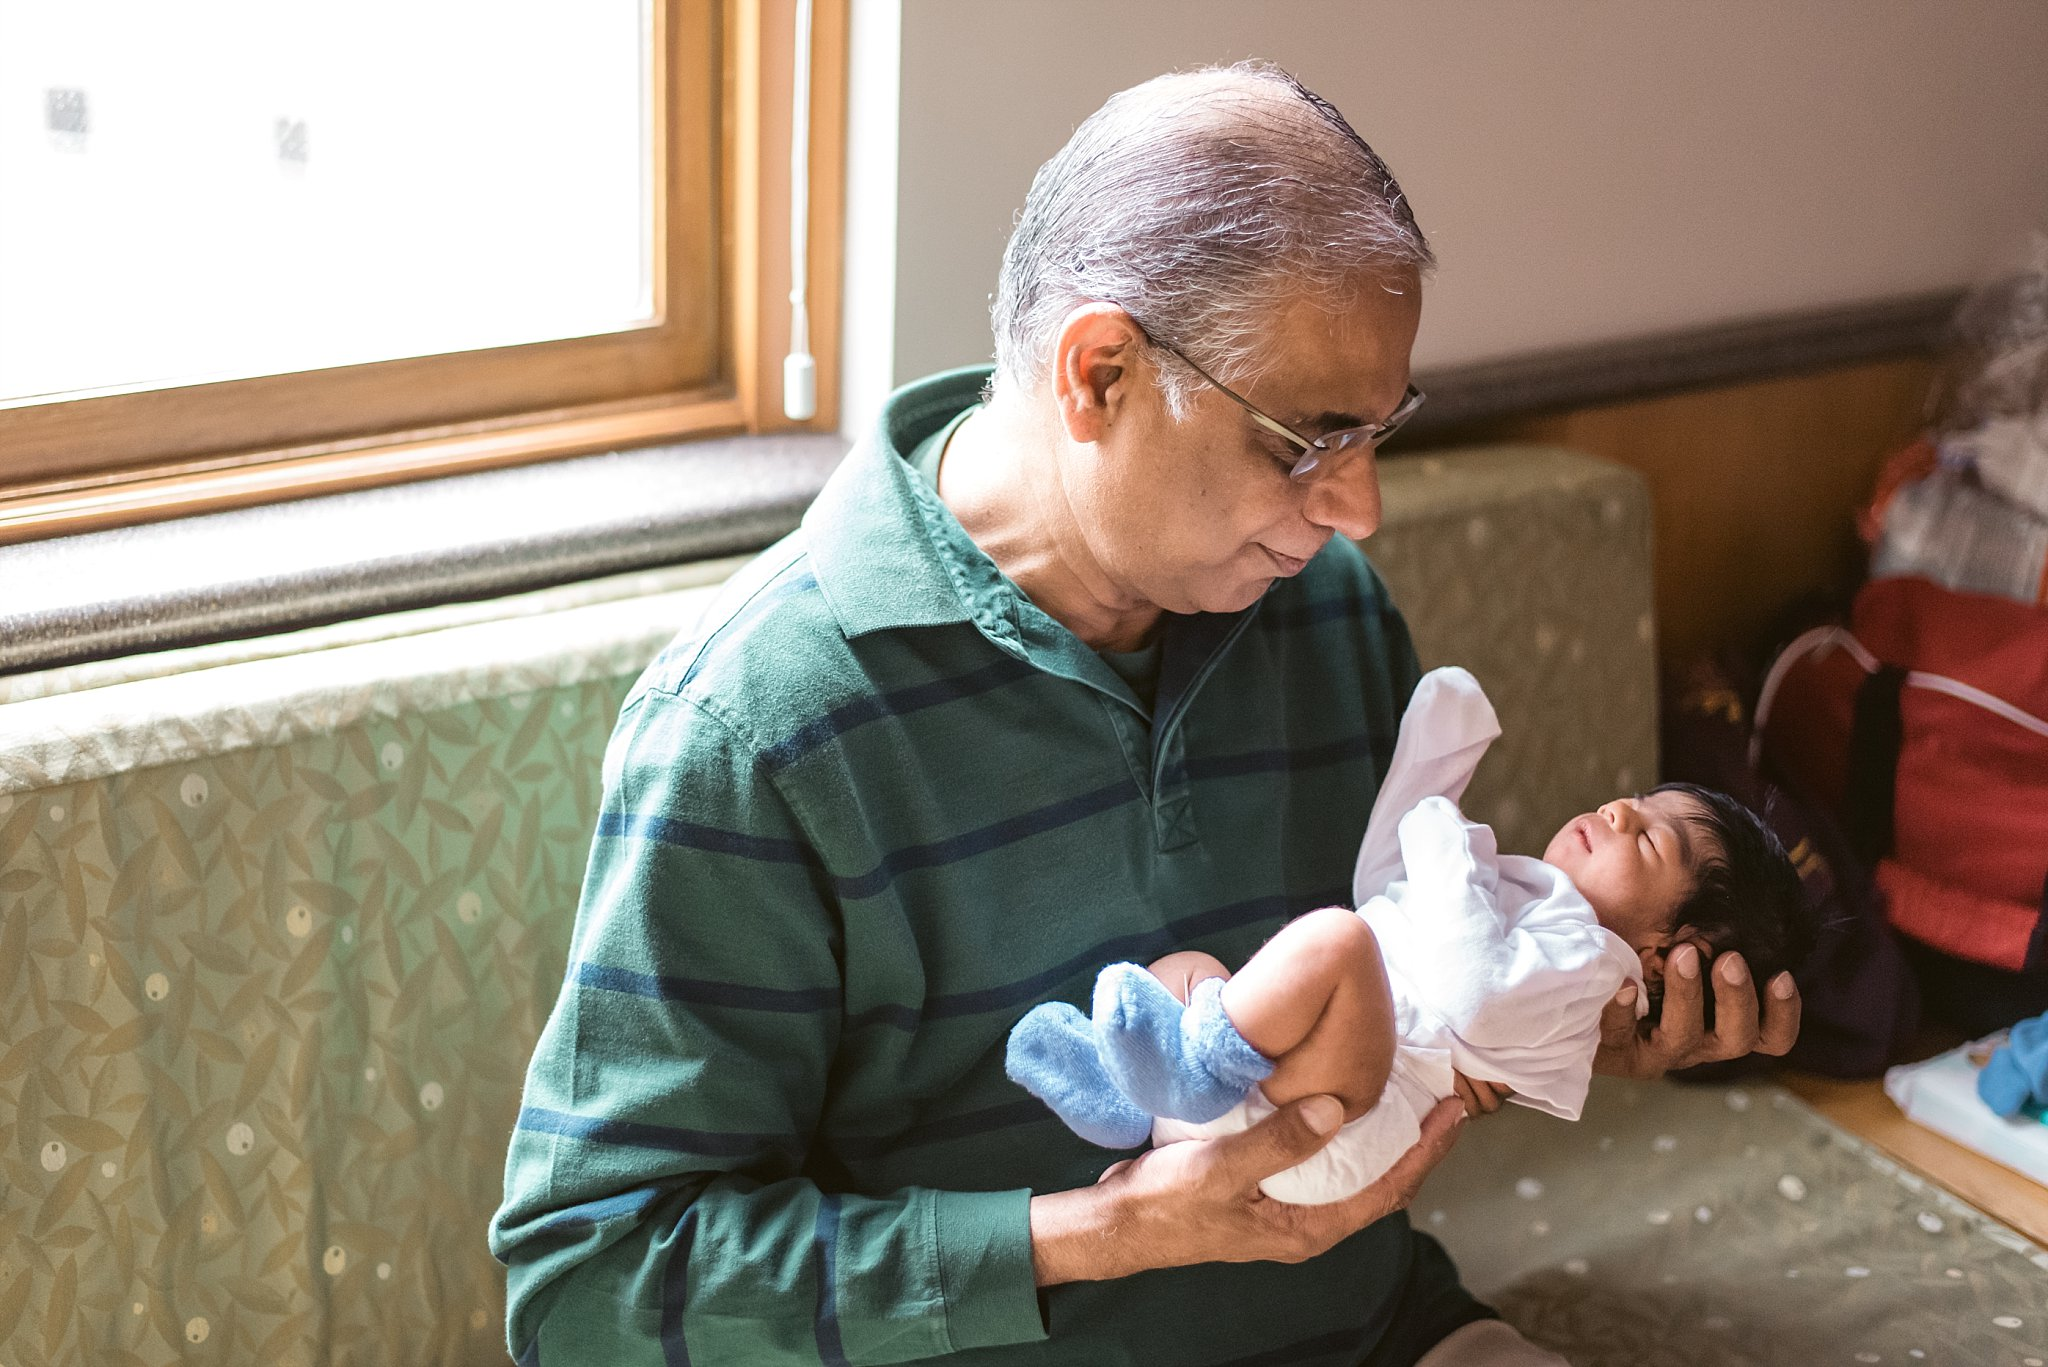 grandfather holding newborn baby